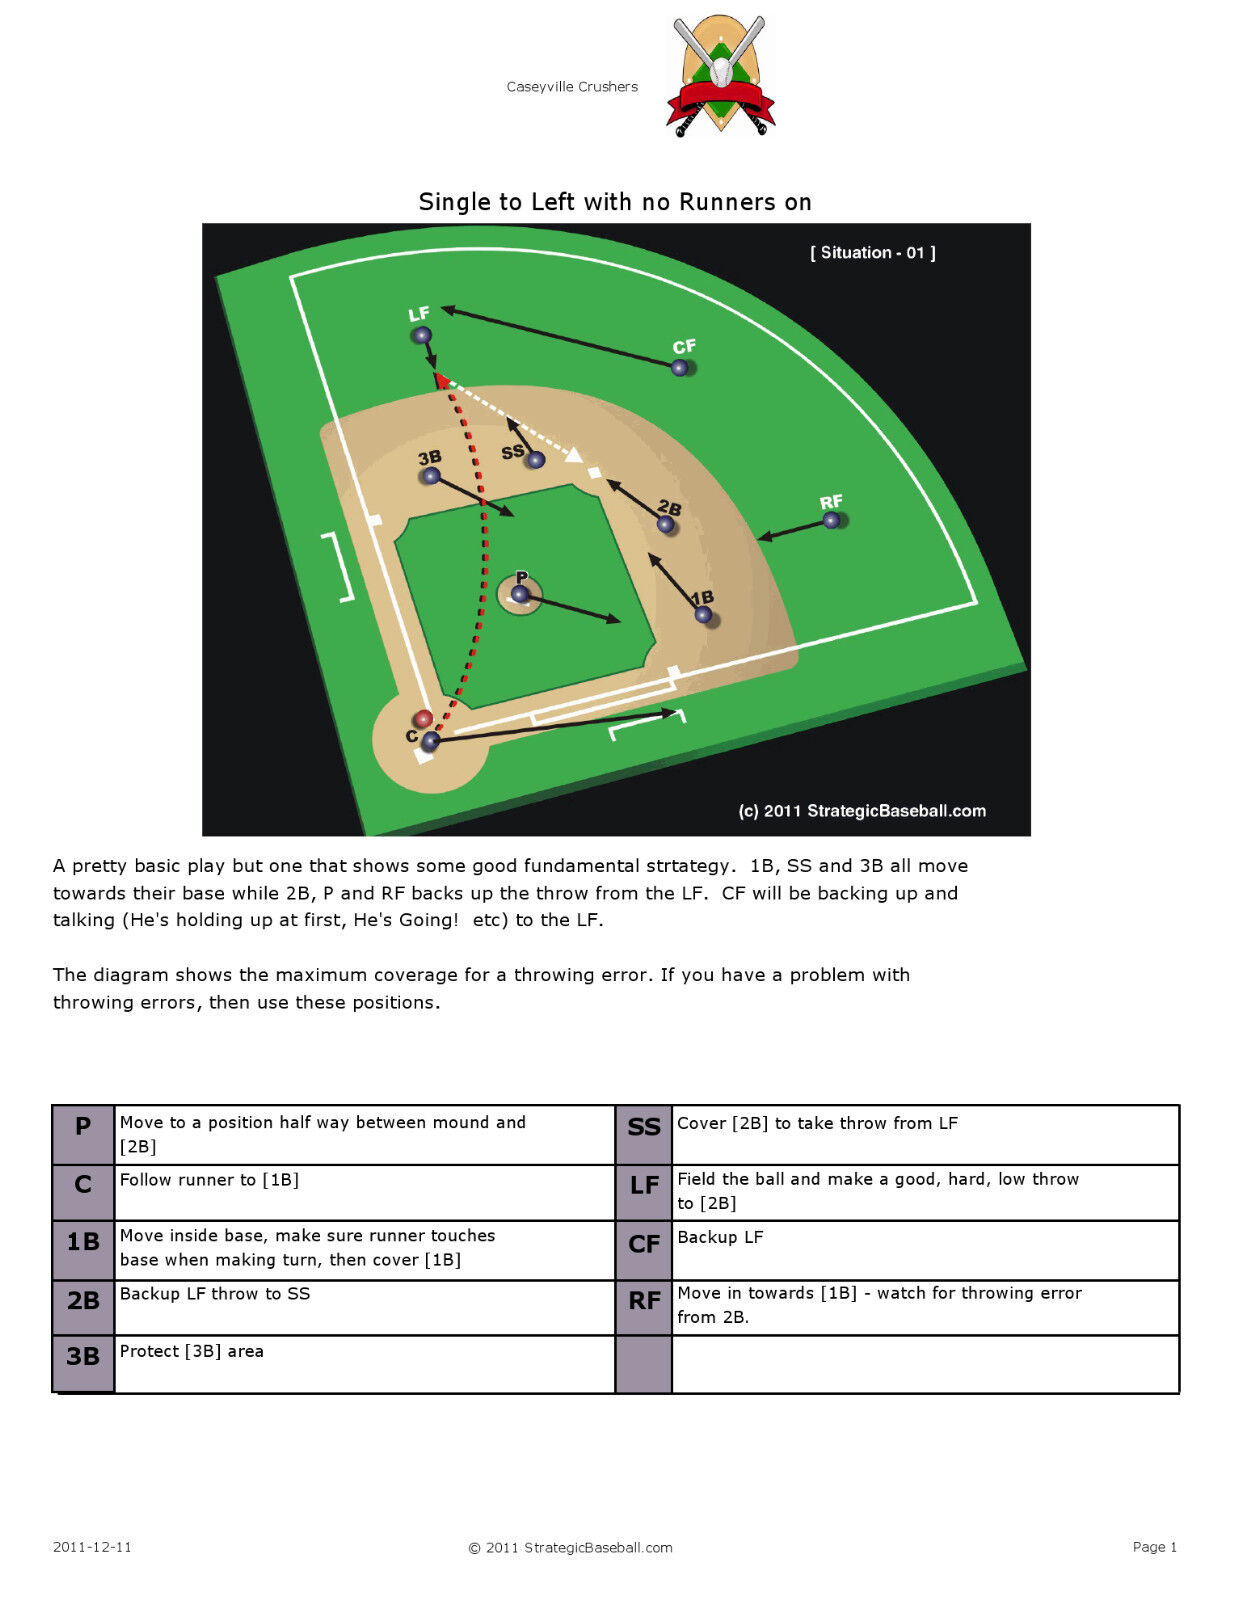 Baseball Defensive Situations and Strategies - over 100 pages